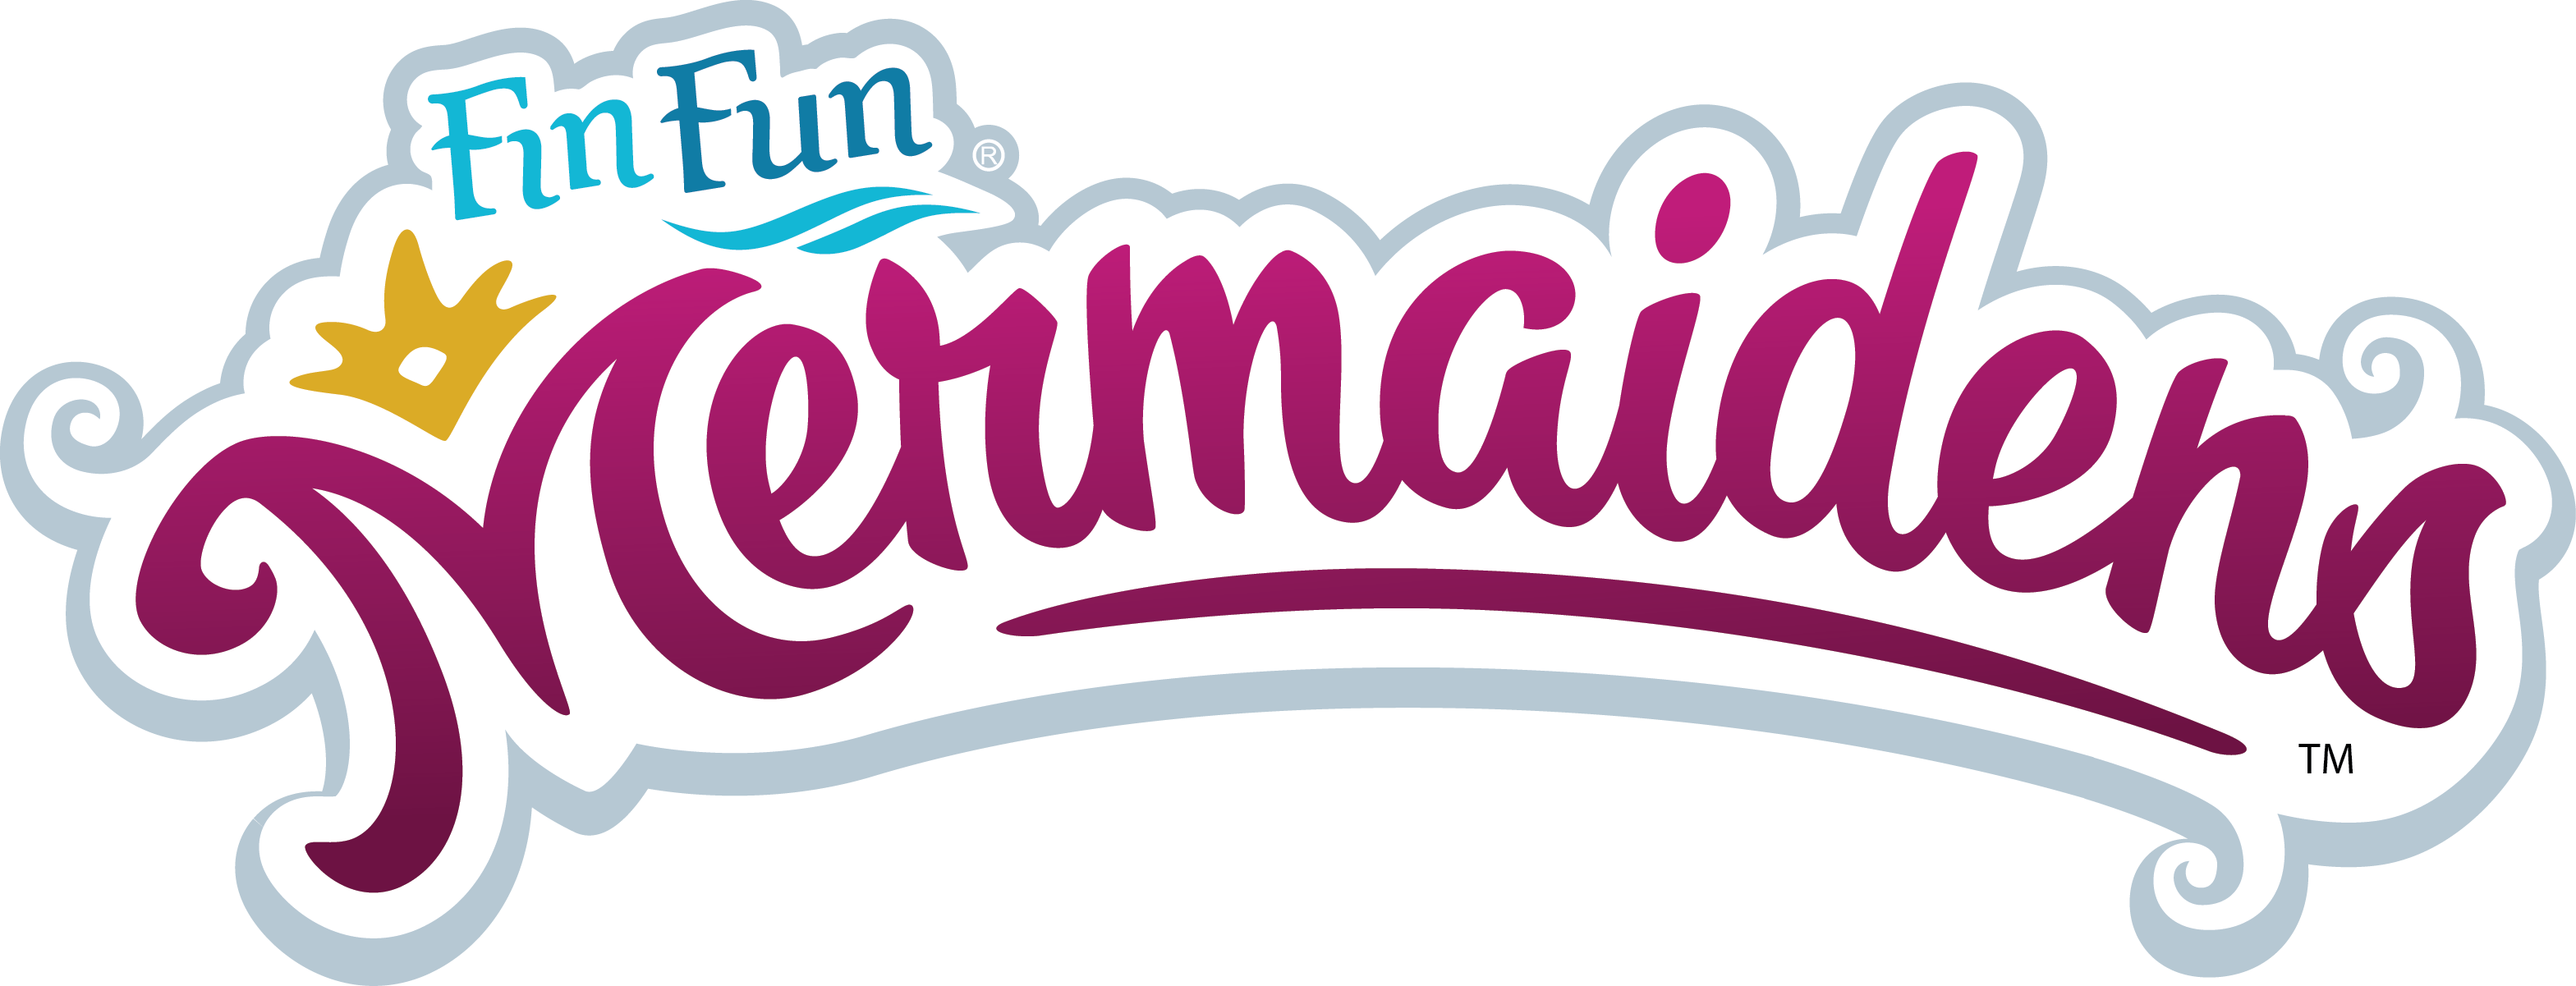 MERMAIDENS_logo_1